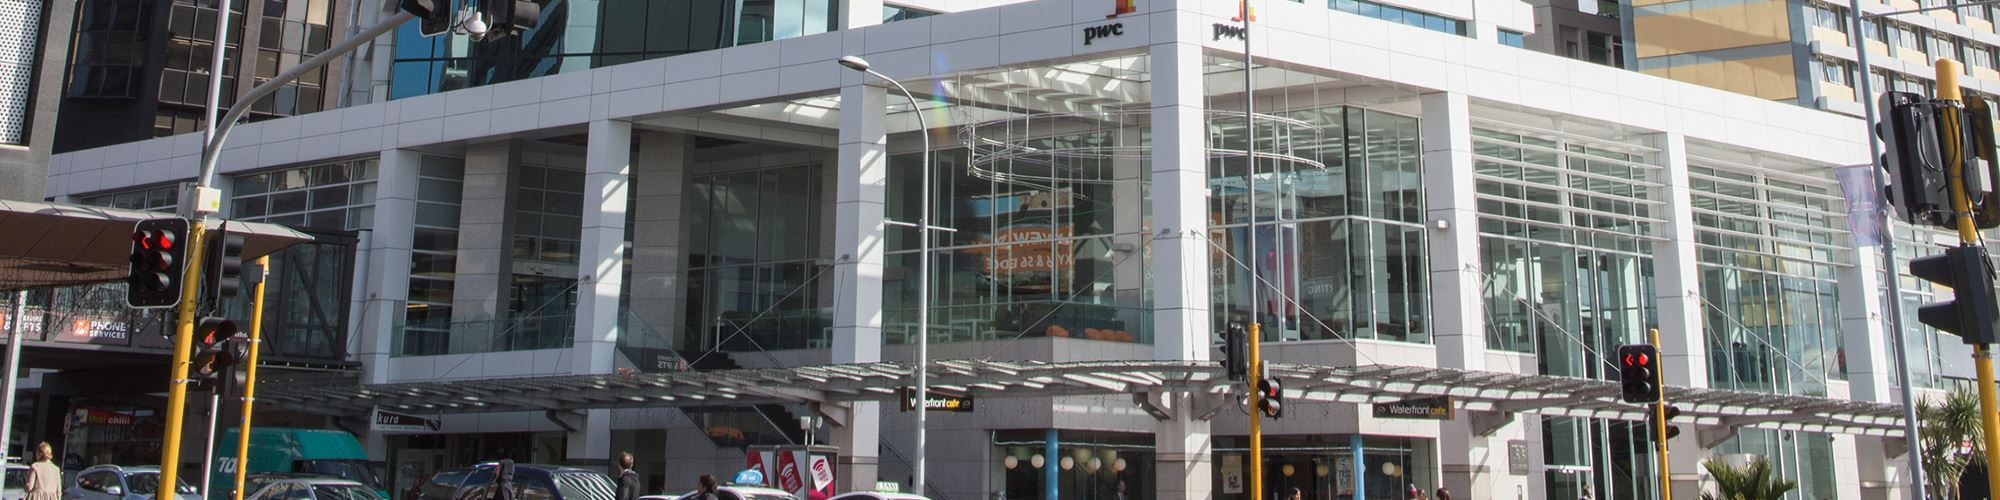 banner-pwctower-auckland-entrance.jpg